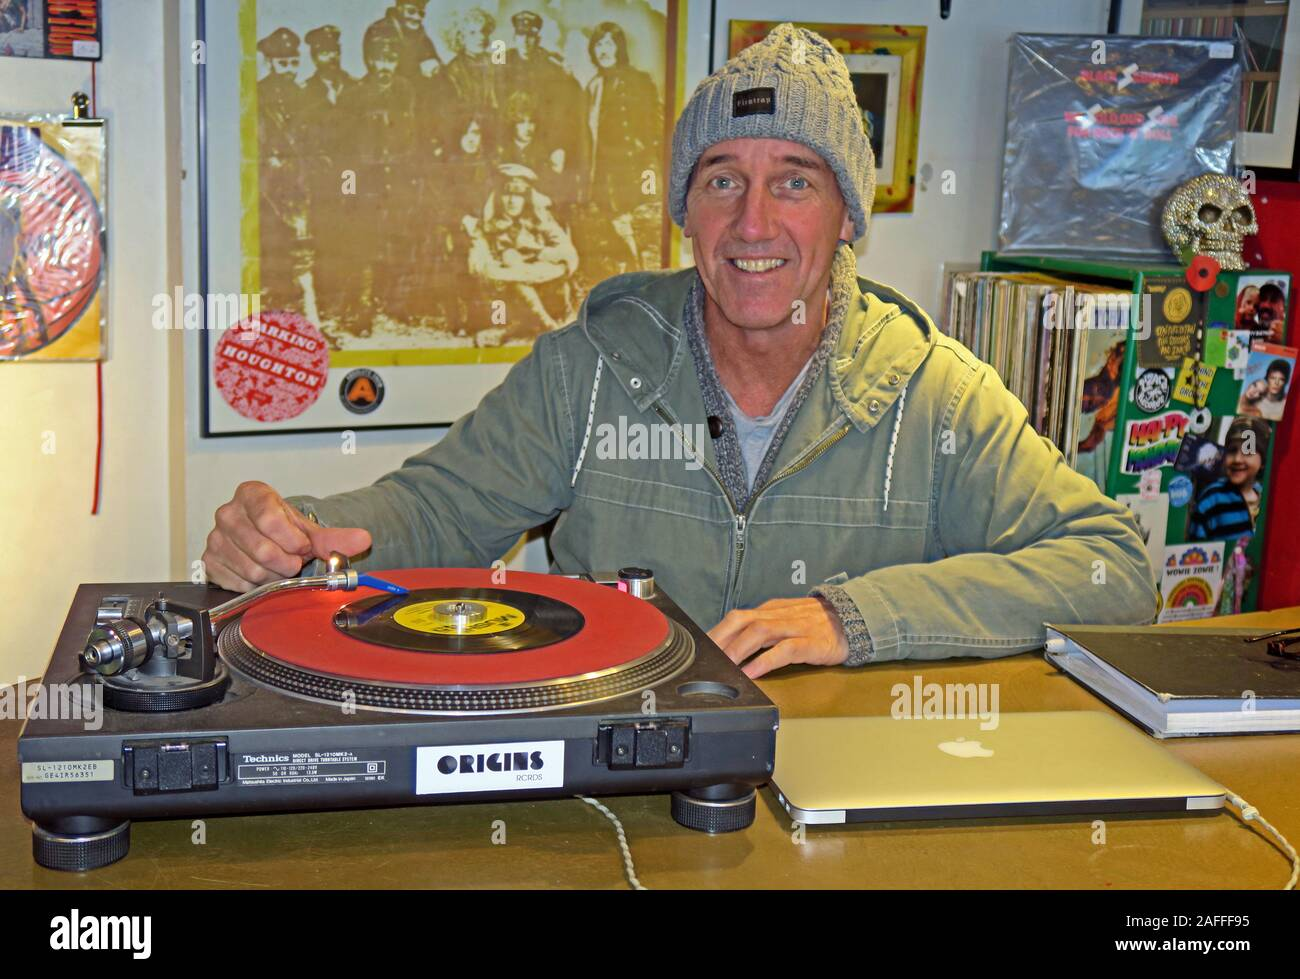 @HotpixUK,HotpixUK,GoTonySmith,turntable,WA1,town centre,Owner,Legh St,Cheshire,England,WA1 1UG,retail,music,independent,shop,store,stores,Lizard Inc,records,vinyl,7inch,playing a single,playing music,single,vinyls,disk,enthusiasts,Specialising in,pre-owned,vinyl emporium,emporium,record shops,Record Label,Racks of lovely vinyl,Racks,lovely vinyl,comeback of vinyl,vinyl comeback,Steven Davidson,Steve